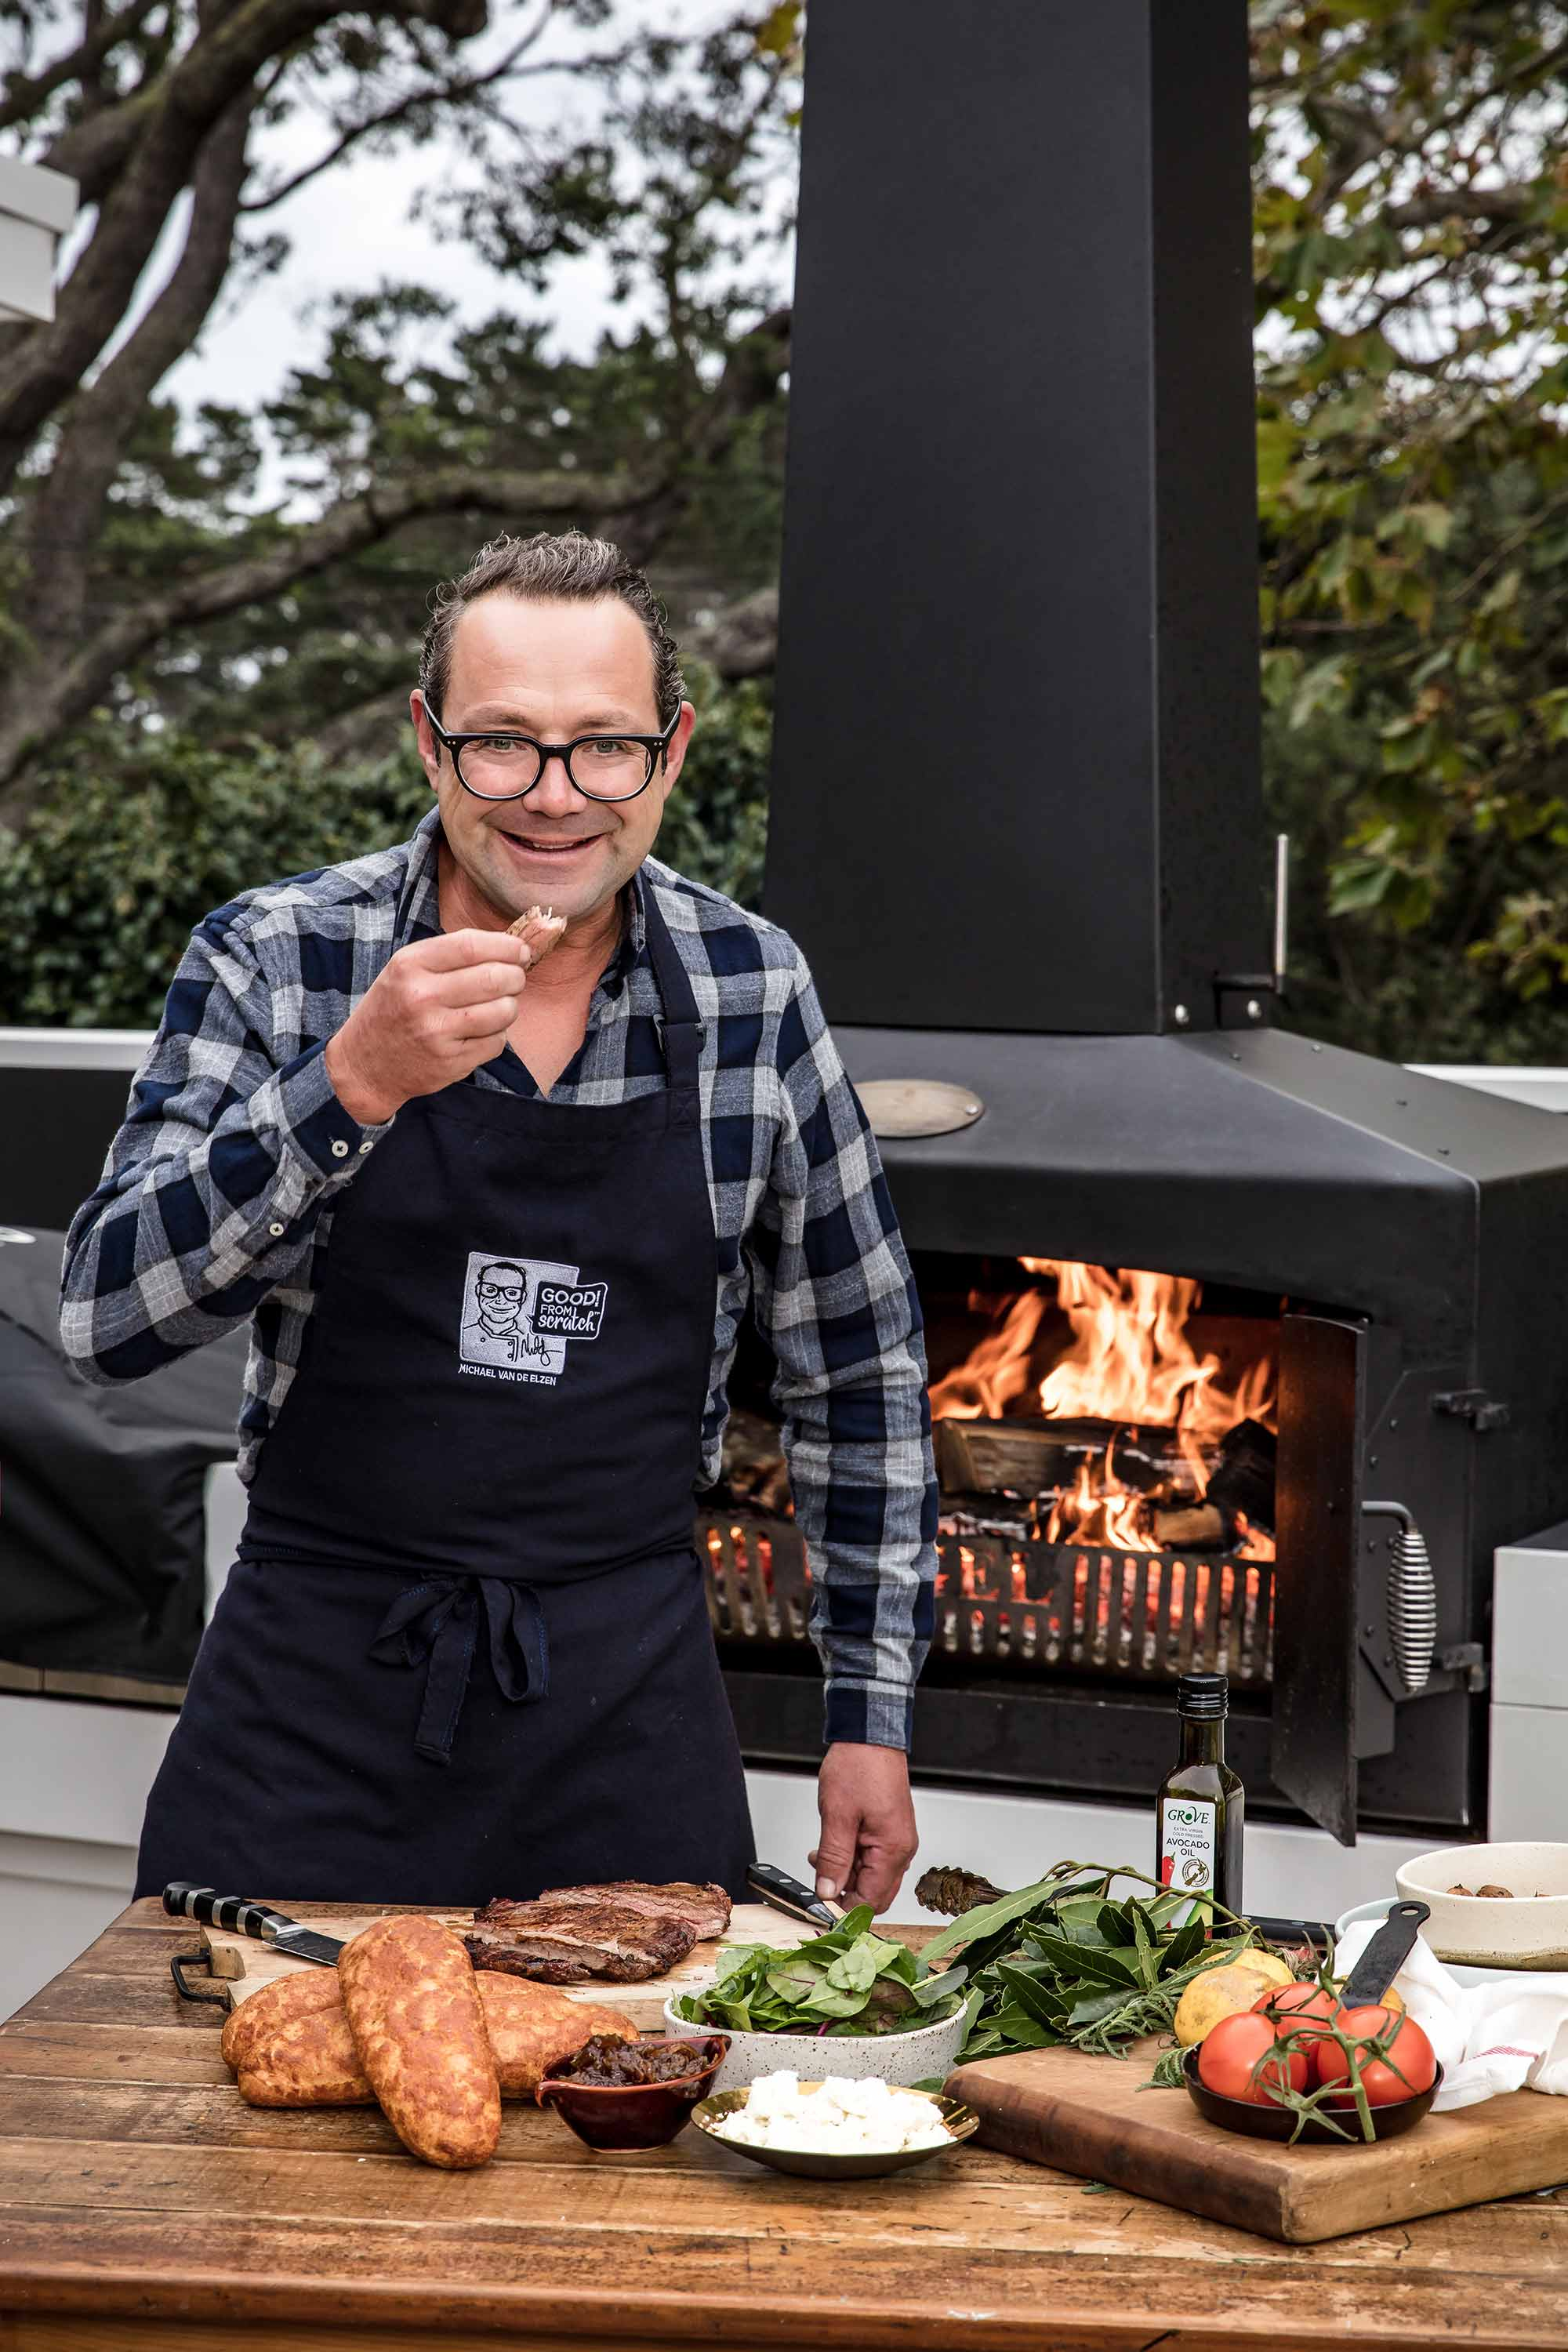 Celebrity Chef, Michael Van de Elzen with his Engel Fire